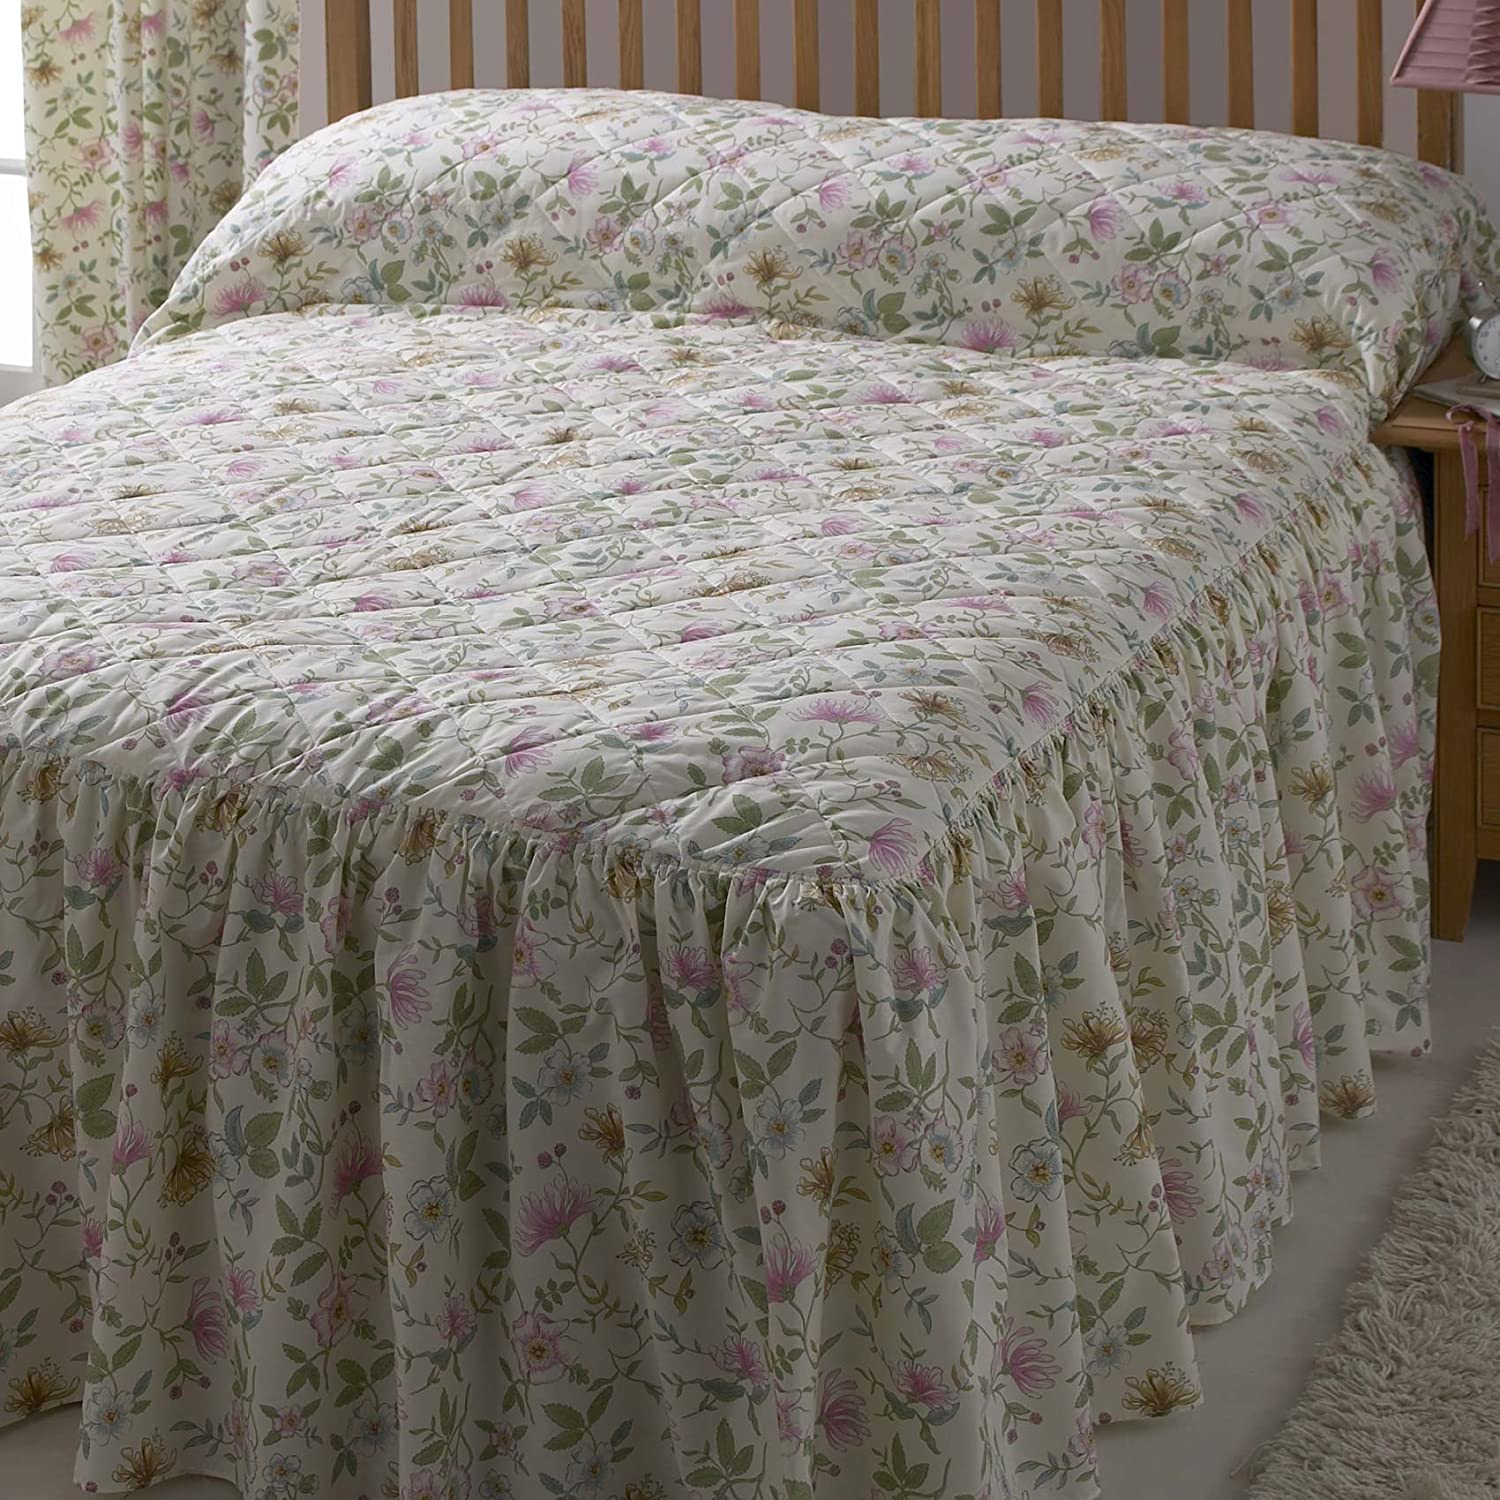 Country Vantona Cottage Garden Floral Print Quilted Fitted Bedspread, Multi - Single Size Dove Mill Bedding